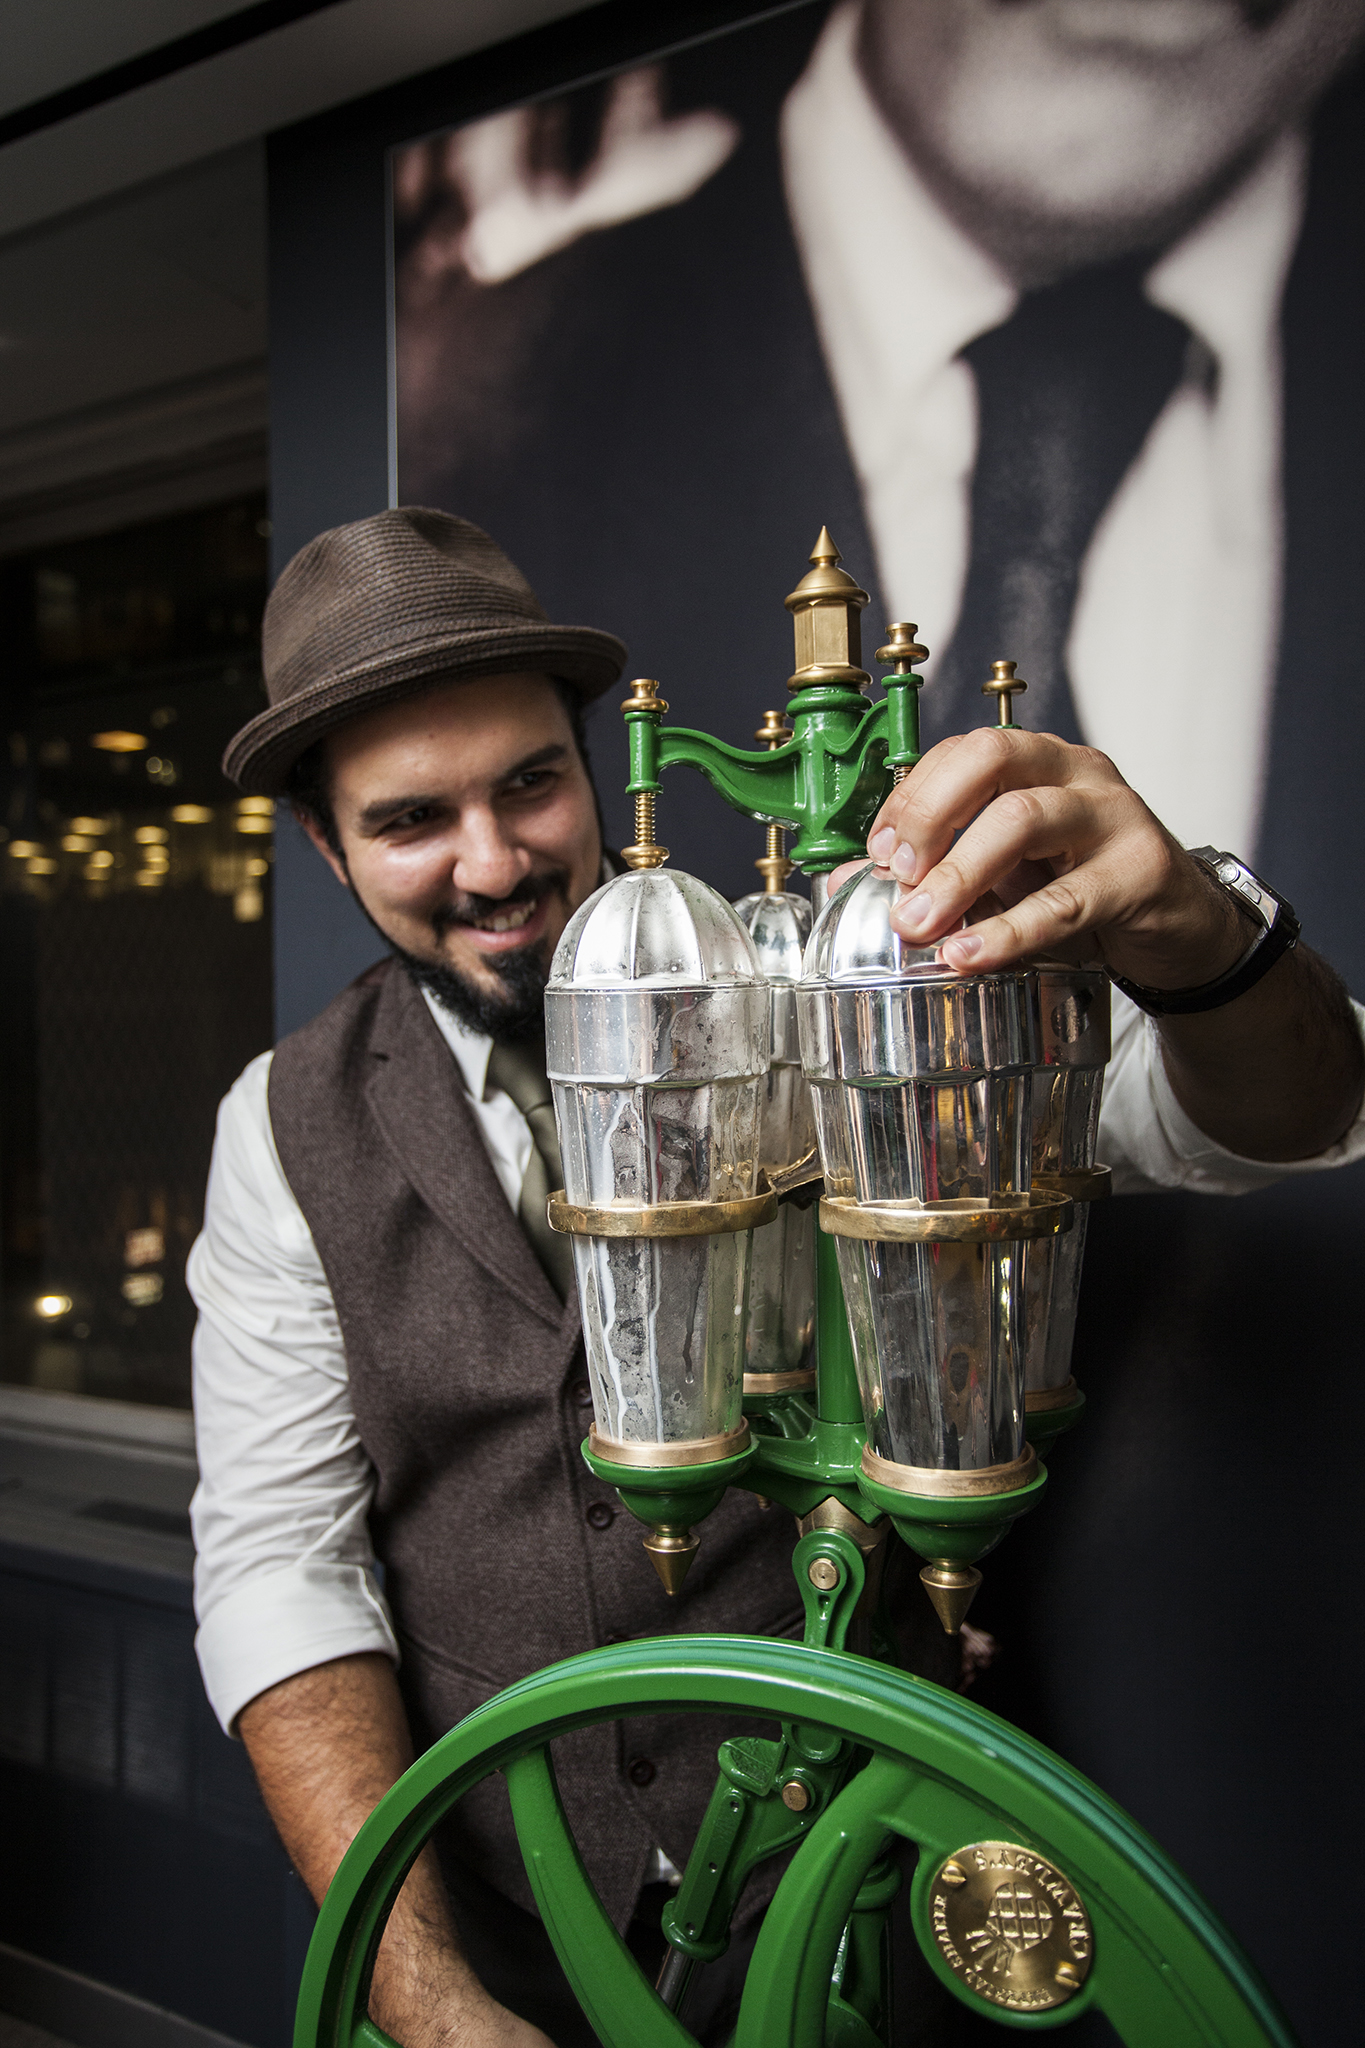 Tanqueray Imperial Shaker